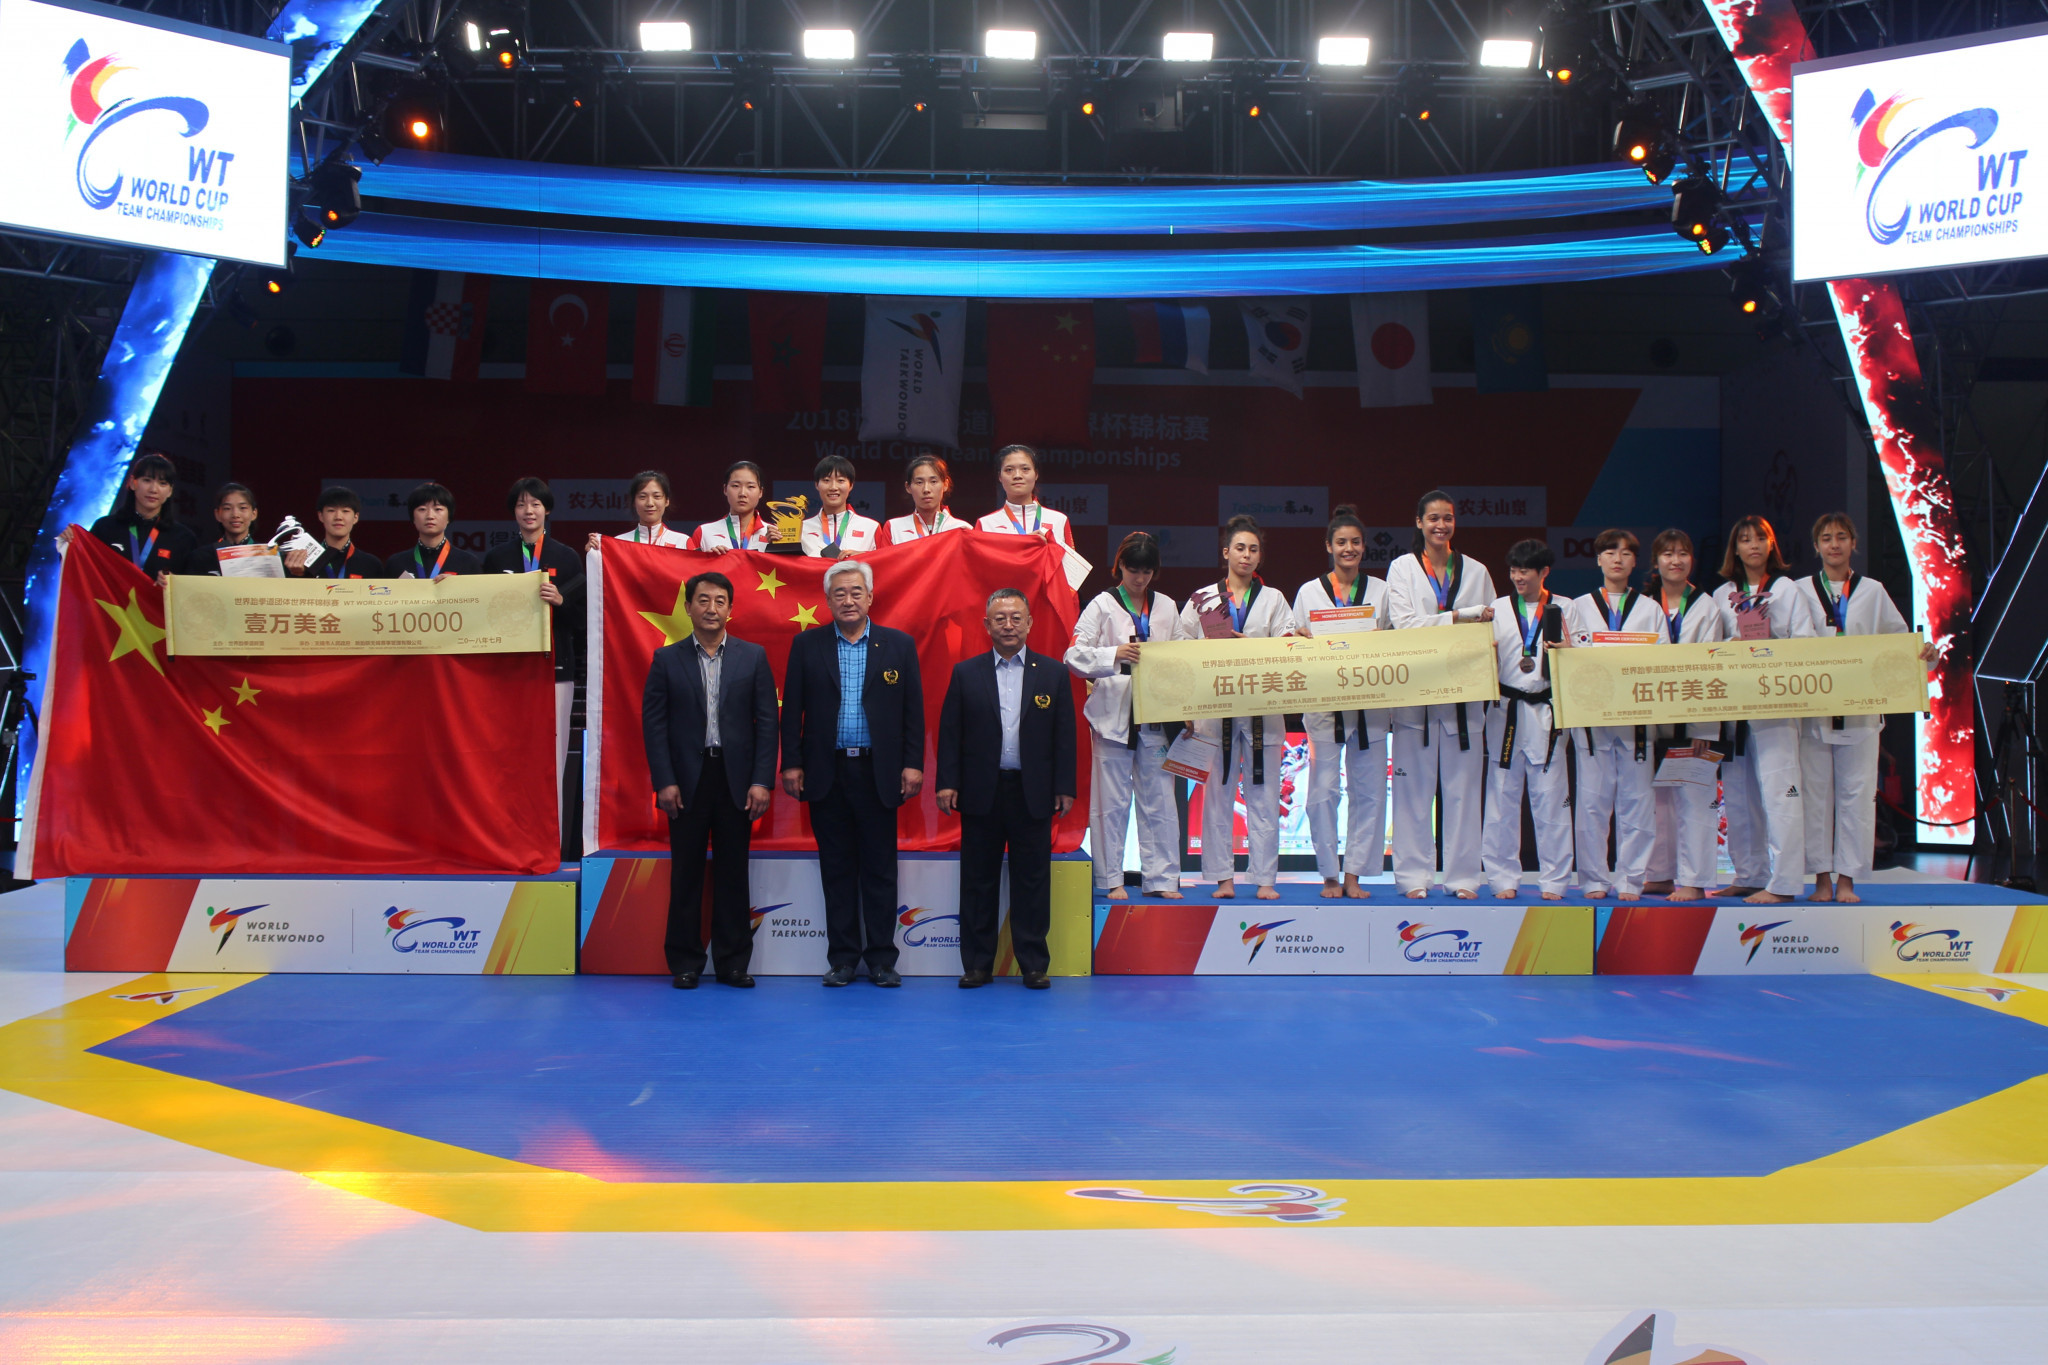 The awarding ceremony at the World Taekwondo World Cup Team Championships in Wuxi © World Taekwondo